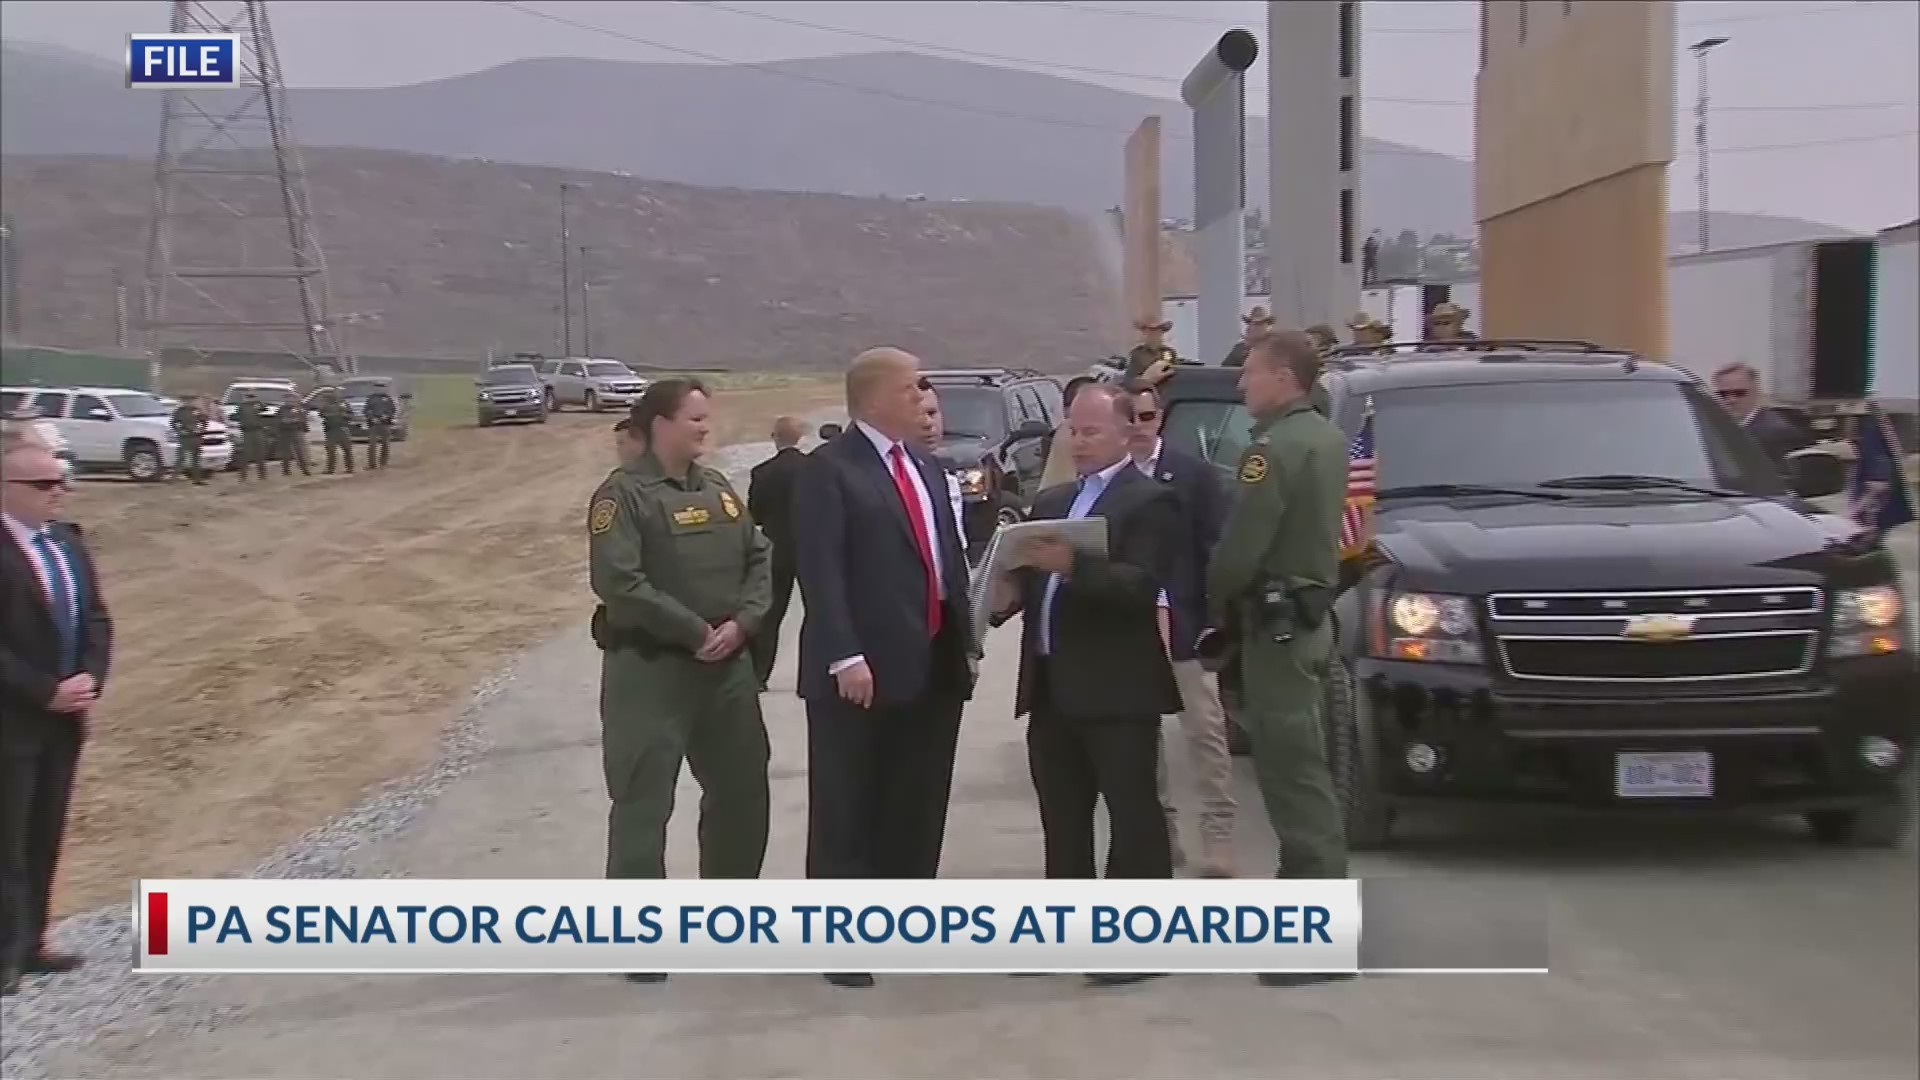 PA senator calls for troops at boarder